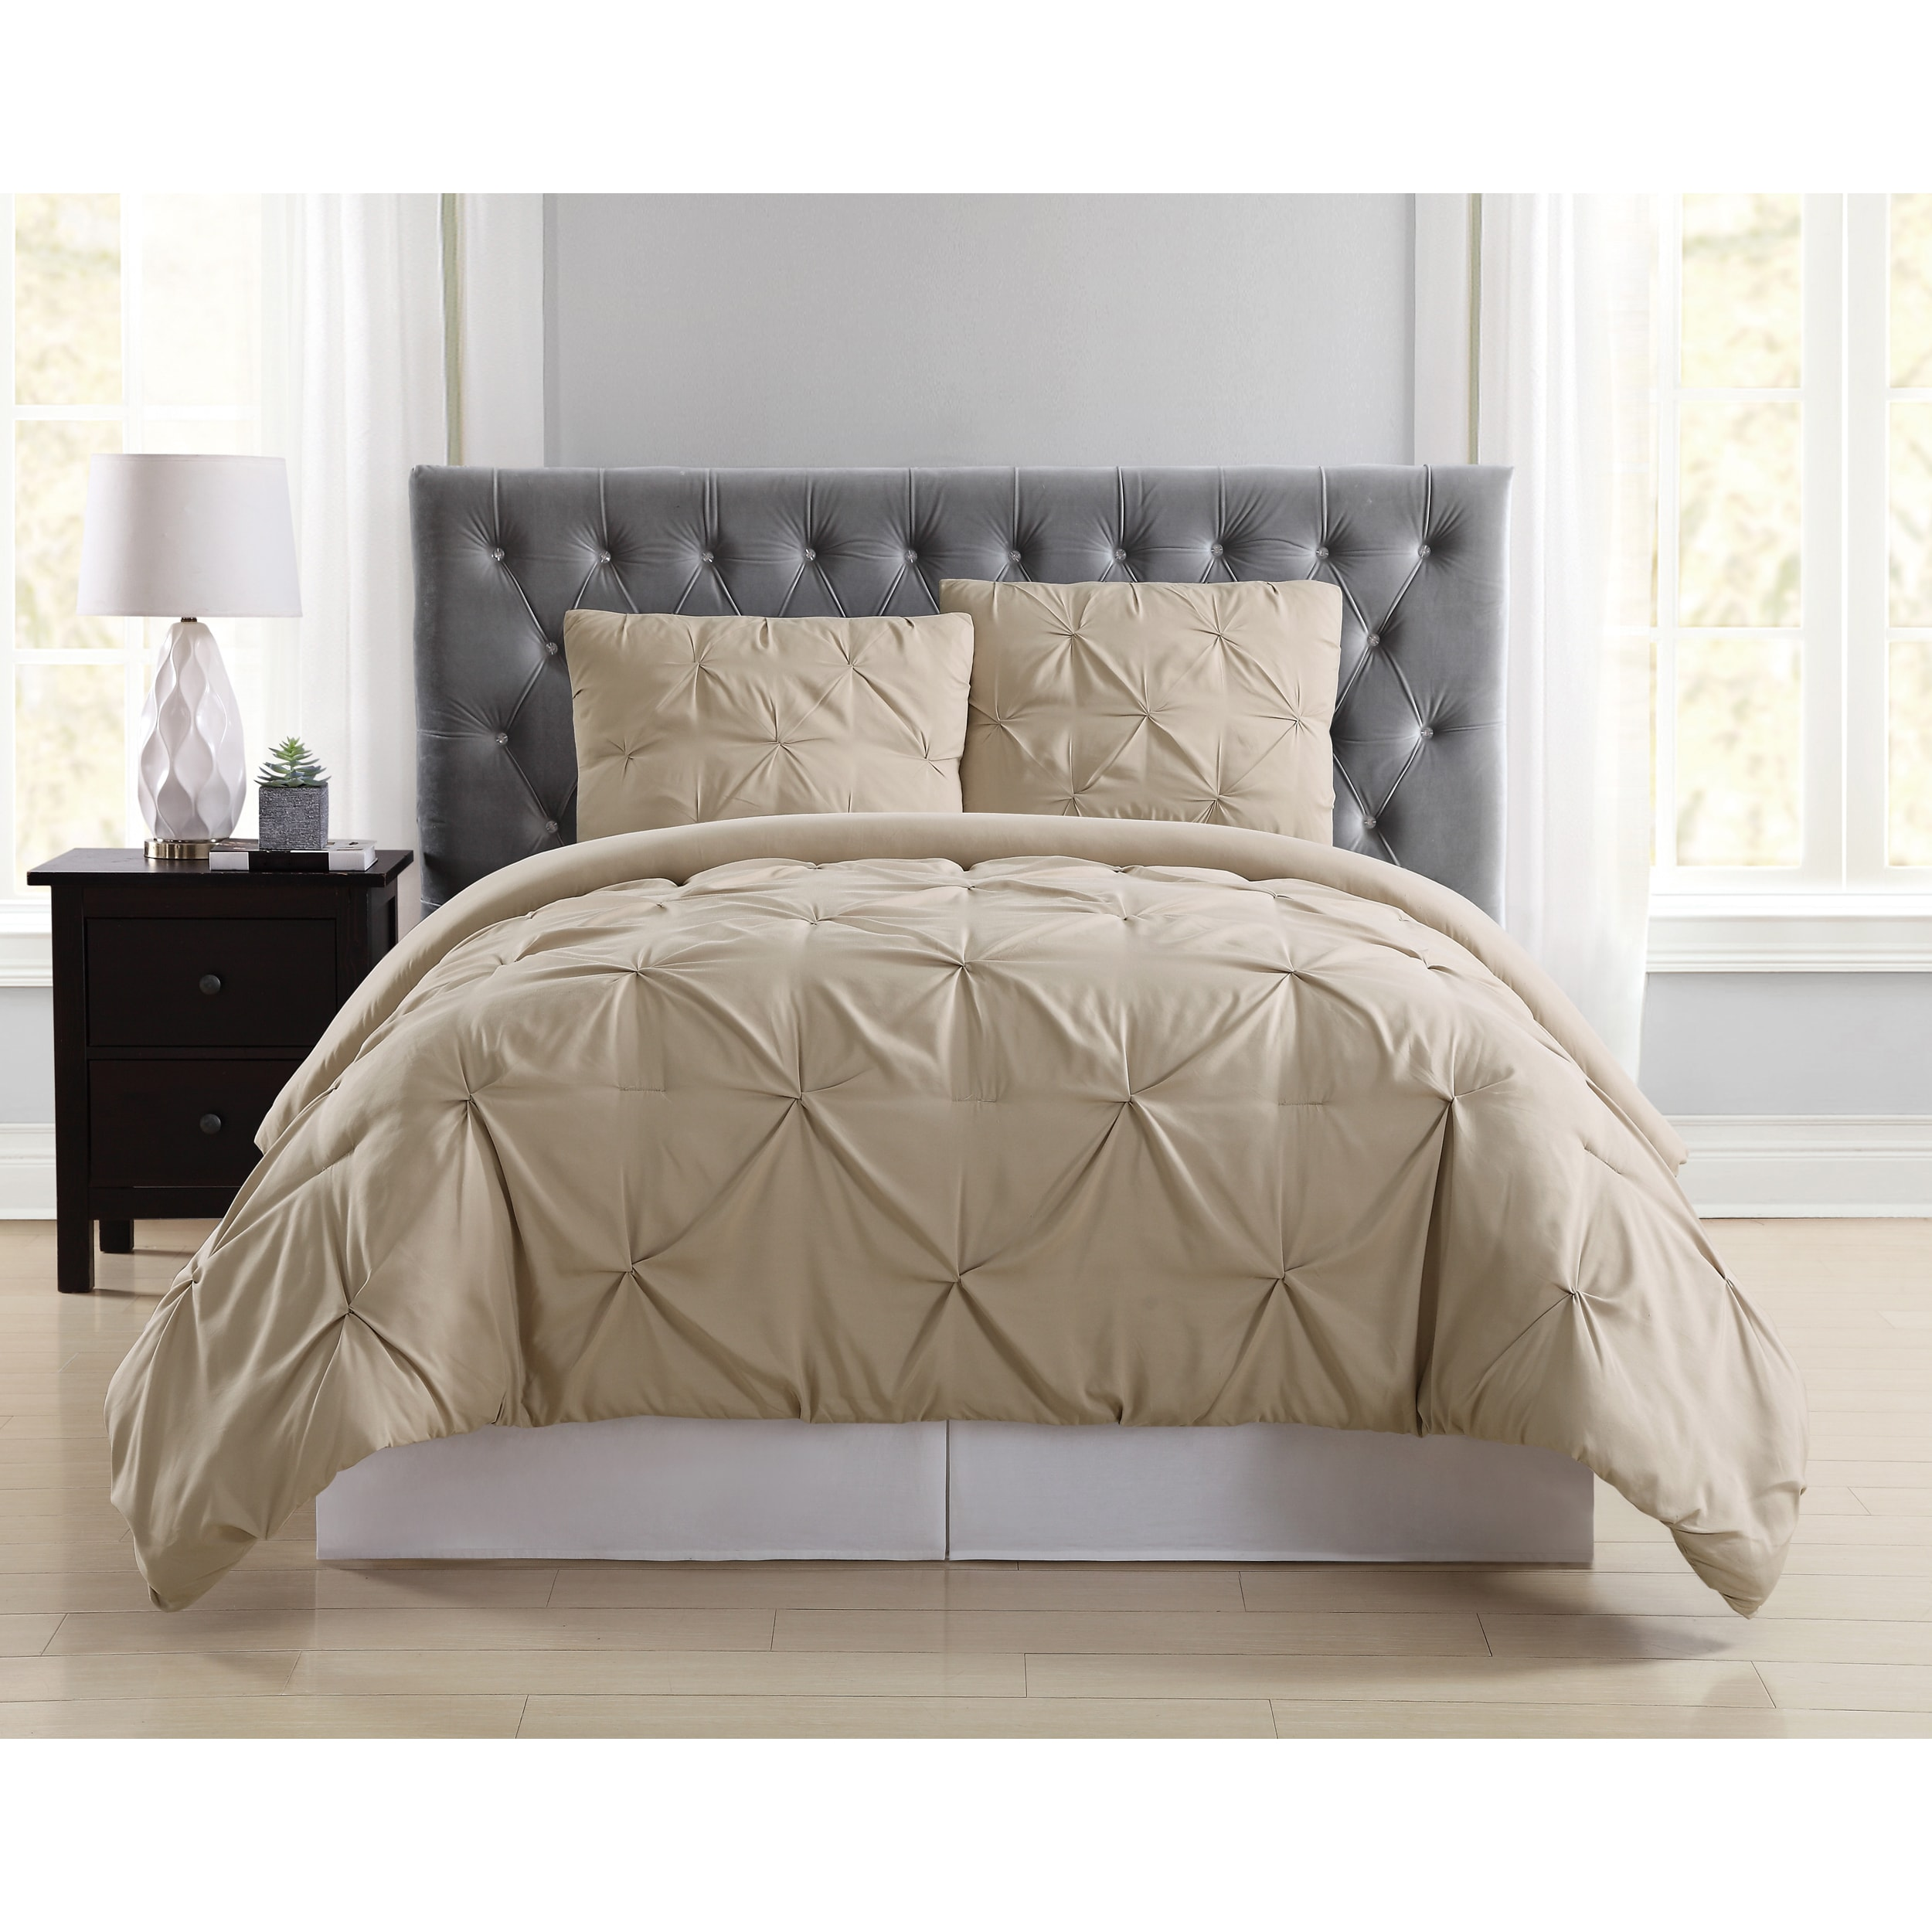 home com solid comforter bedding quilted essence alexis ip color walmart piece set